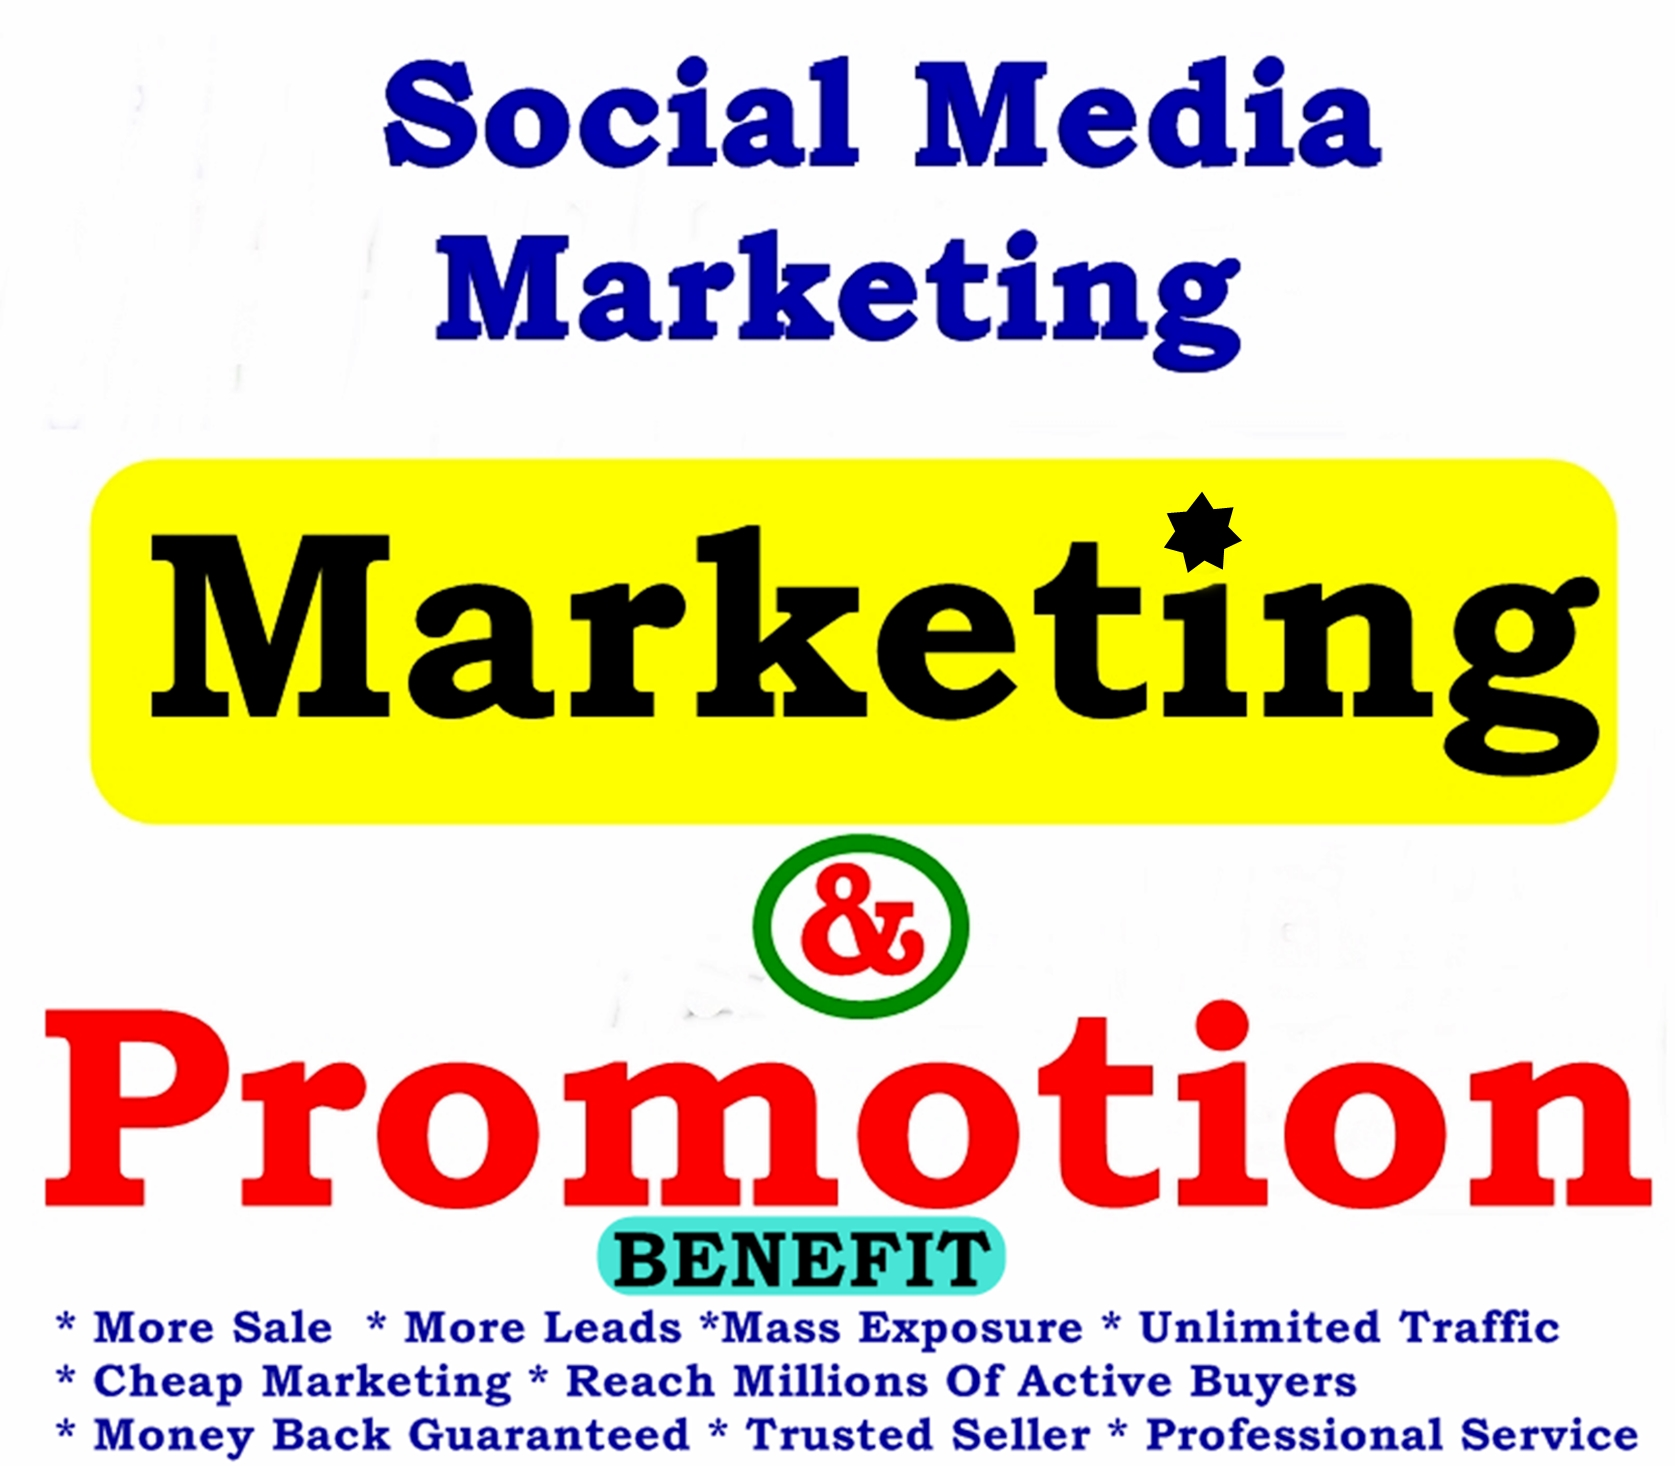 Massive PROMOTION and Marketing - Cheap Complete Soci...